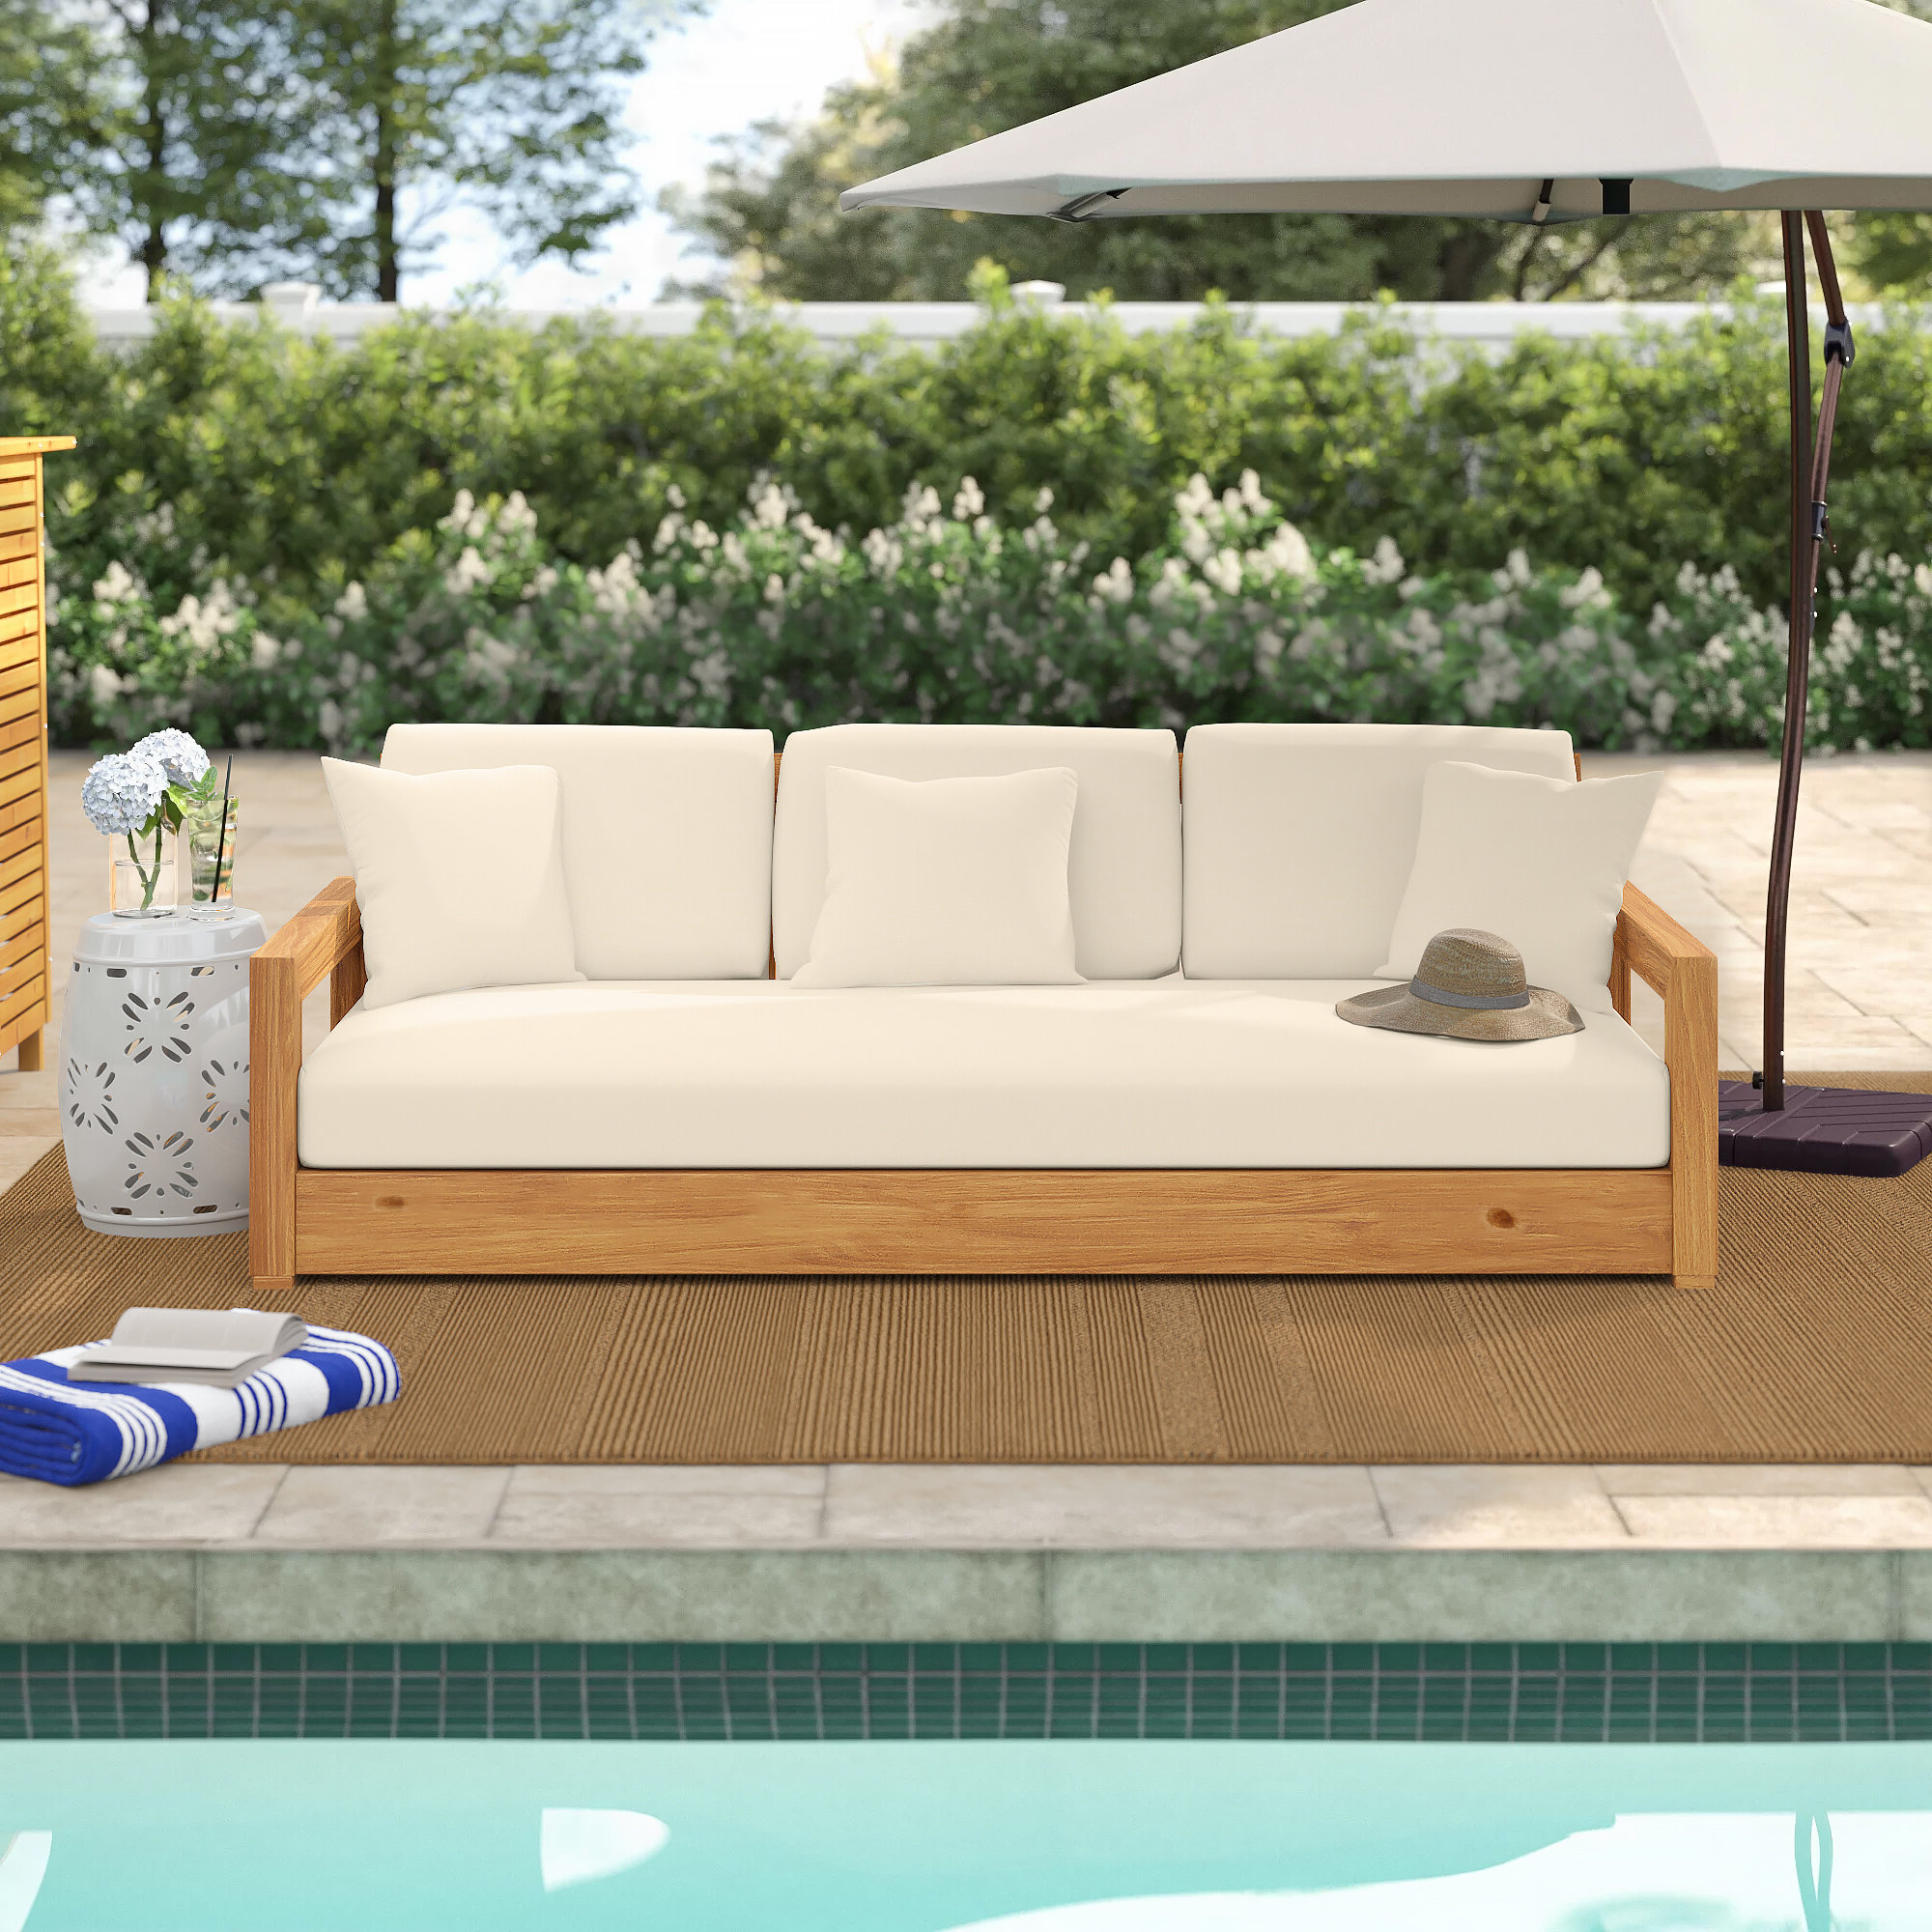 Well Known Montford Teak Patio Sofas With Cushions With Regard To Rosecliff Heights Lakeland Teak Patio Sofa With Cushions (View 20 of 20)